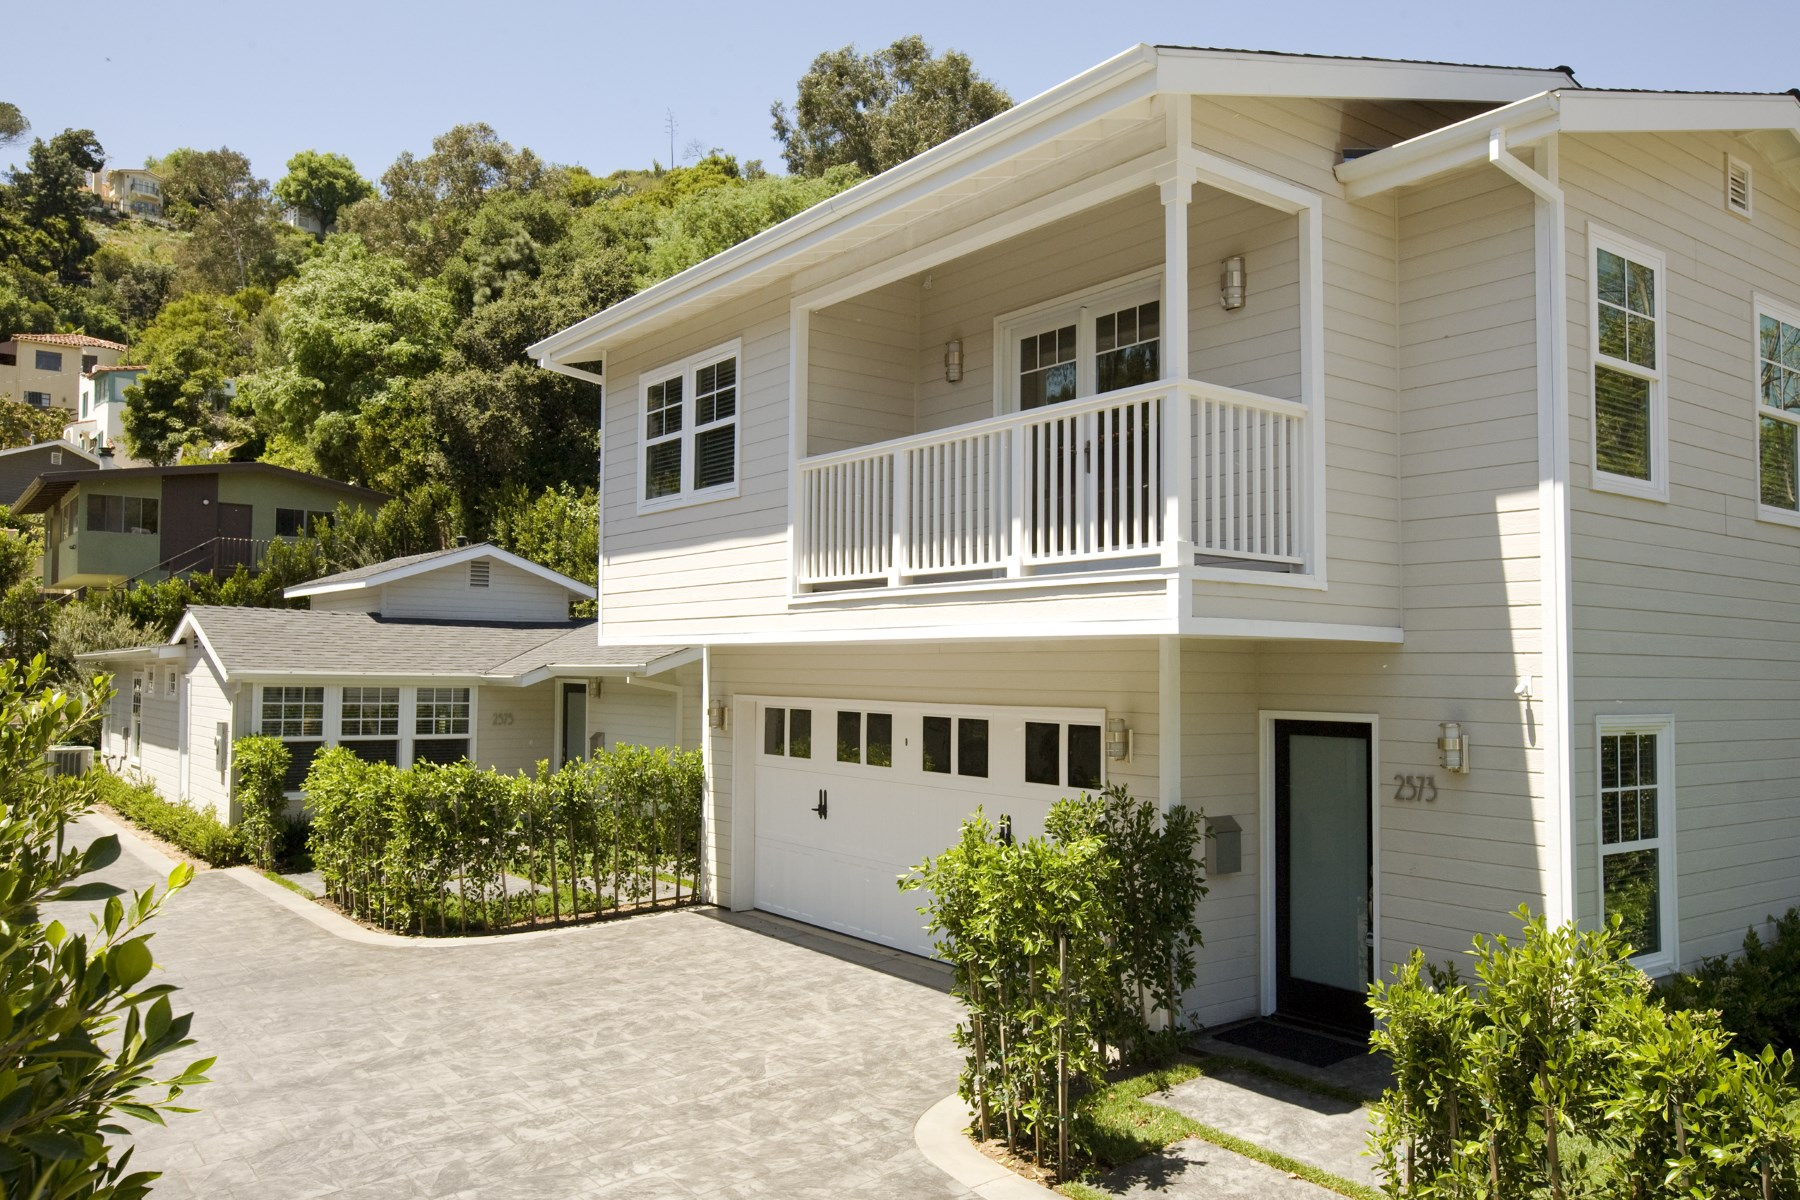 Single Family Home for Sale at 2575 North Beachwood Drive Los Angeles, California, 90068 United States